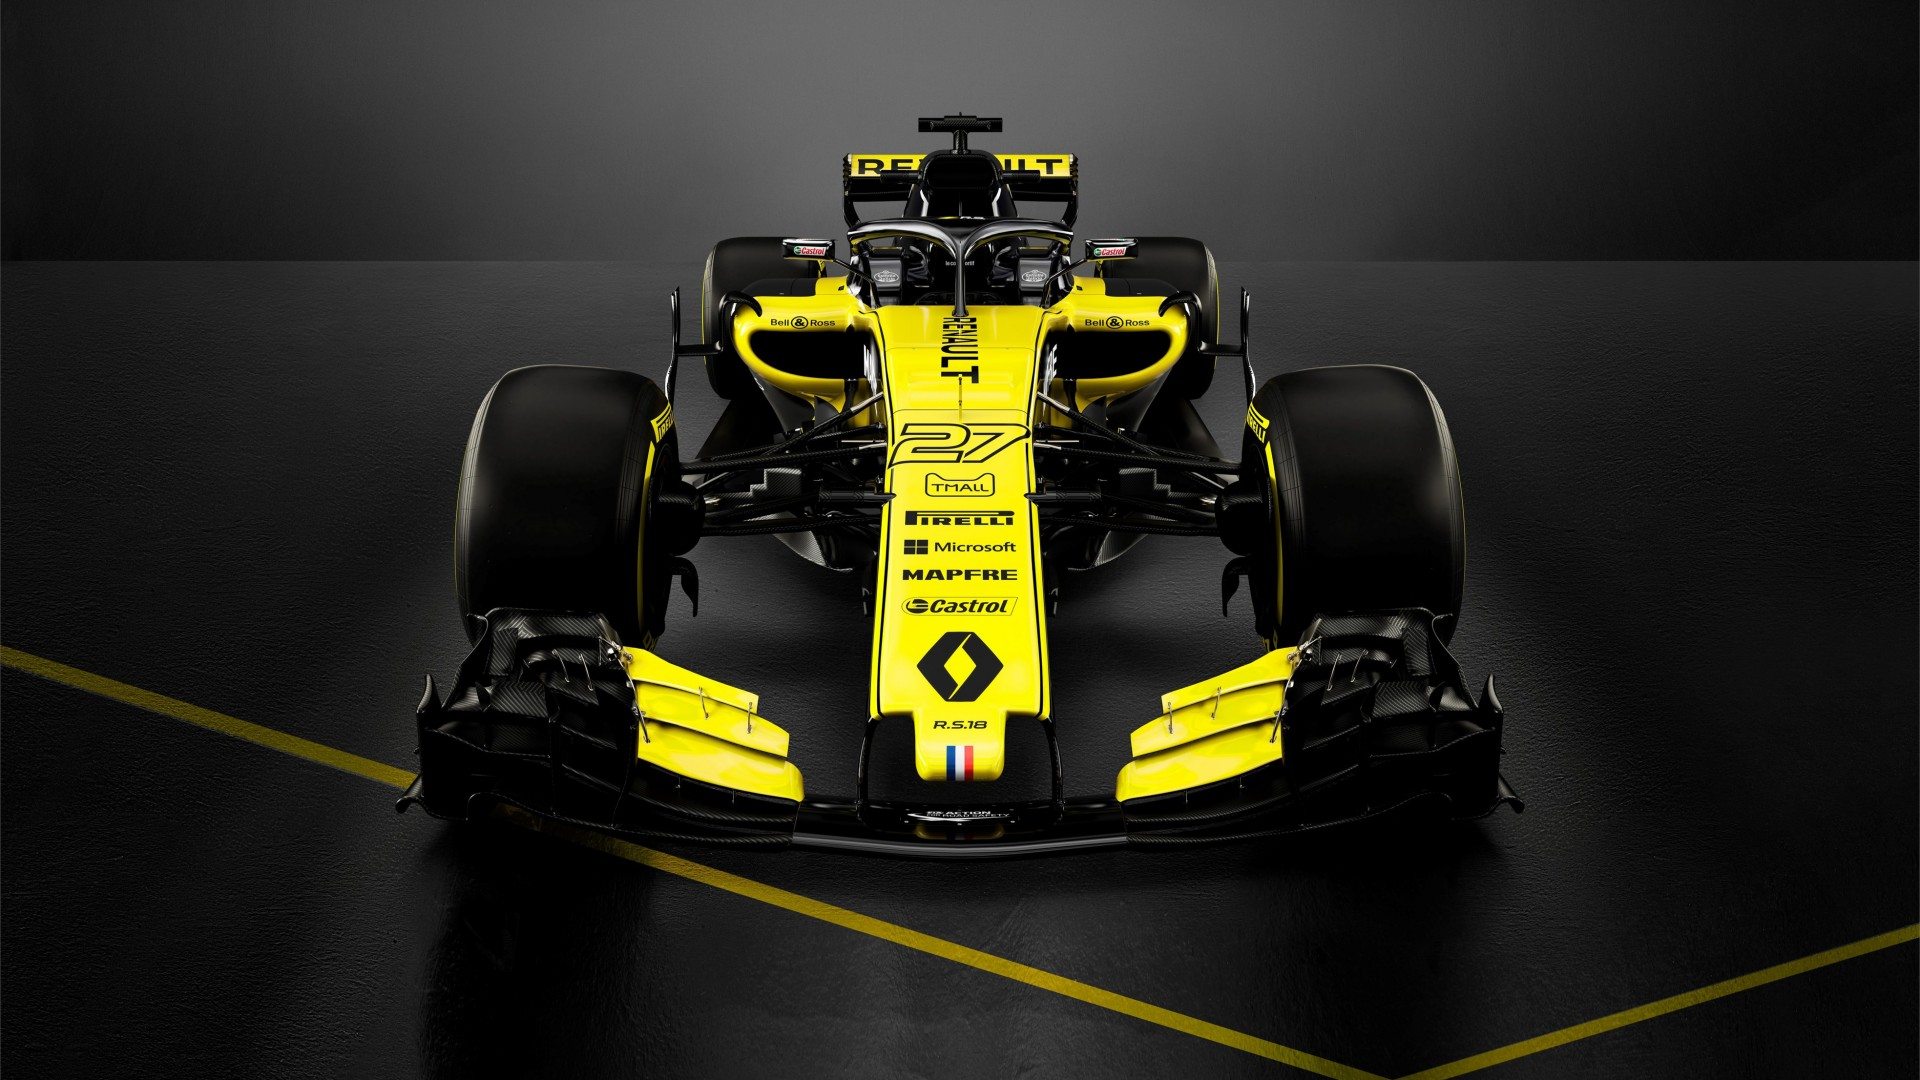 2018 renault rs18 f1 formula 1 car 4k wallpaper hd car. Black Bedroom Furniture Sets. Home Design Ideas